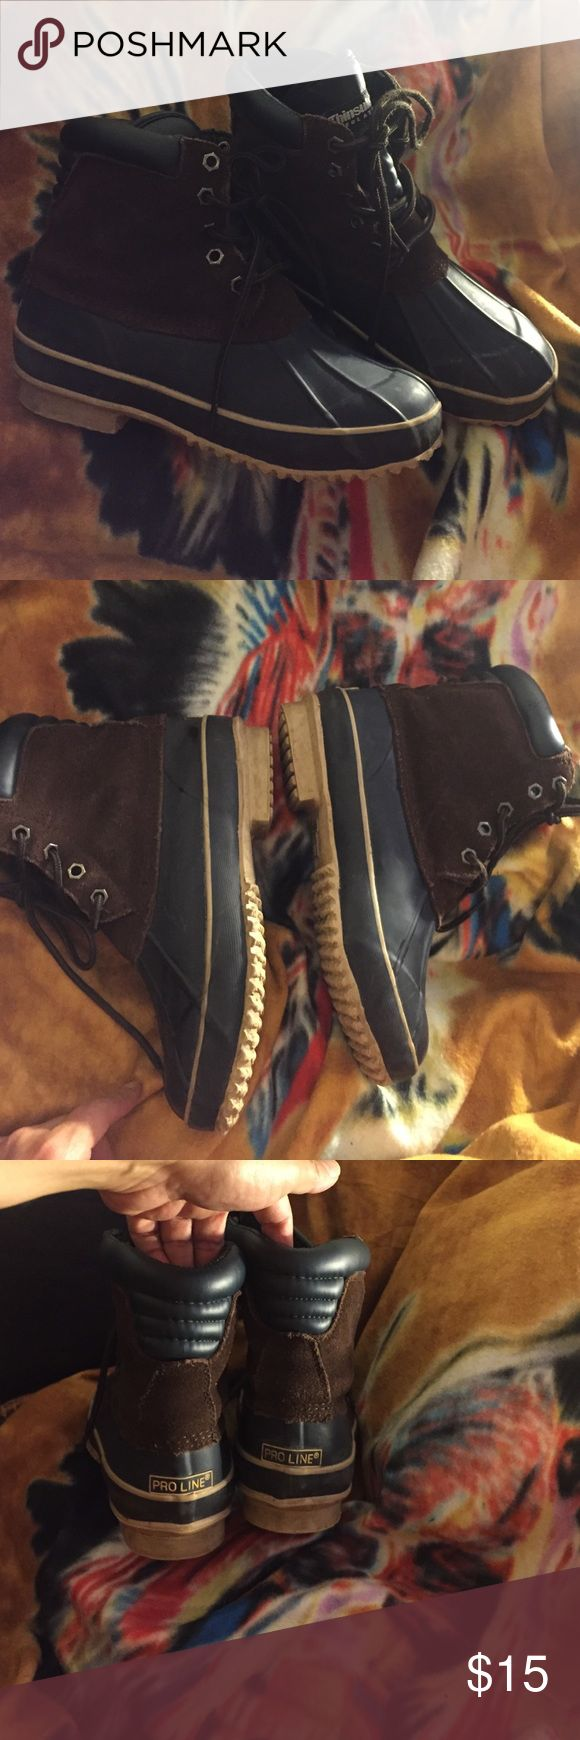 Pro Line Thinsulate  boots Cute rain boots , worn a few times only , , upper leather ,excellent condition super soft , super comfy and super warm at snow ,absolutely will always keep your feet dry in a rainy day , fashionable never goes out of style compare to L.L.bean $220 size 6 best in size 7 Pro Line thinsulate boots Shoes Ankle Boots & Booties